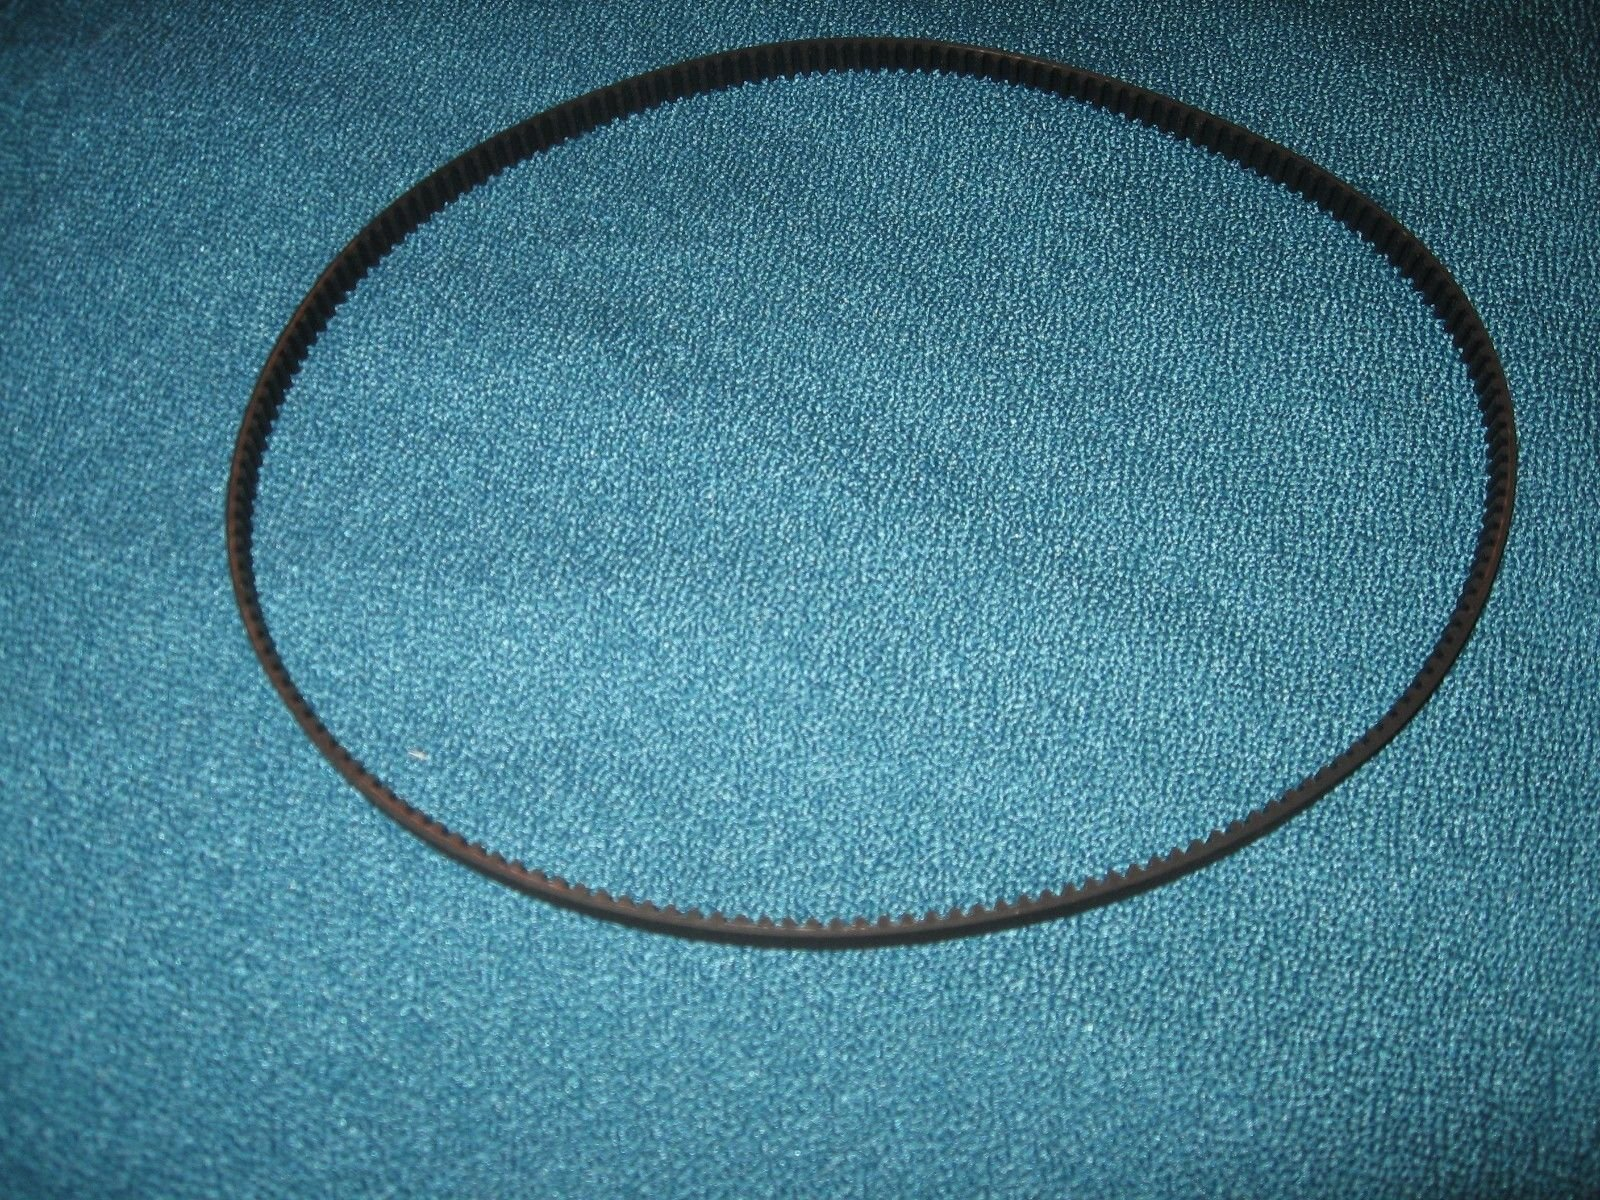 (Ship from USA) NEW DRIVE BELT MADE IN USA FOR SUNBEAM 5891 BREAD MACHINE REPLACEMENT DRIVE BELT /ITEM NO#E8FH4F854142350